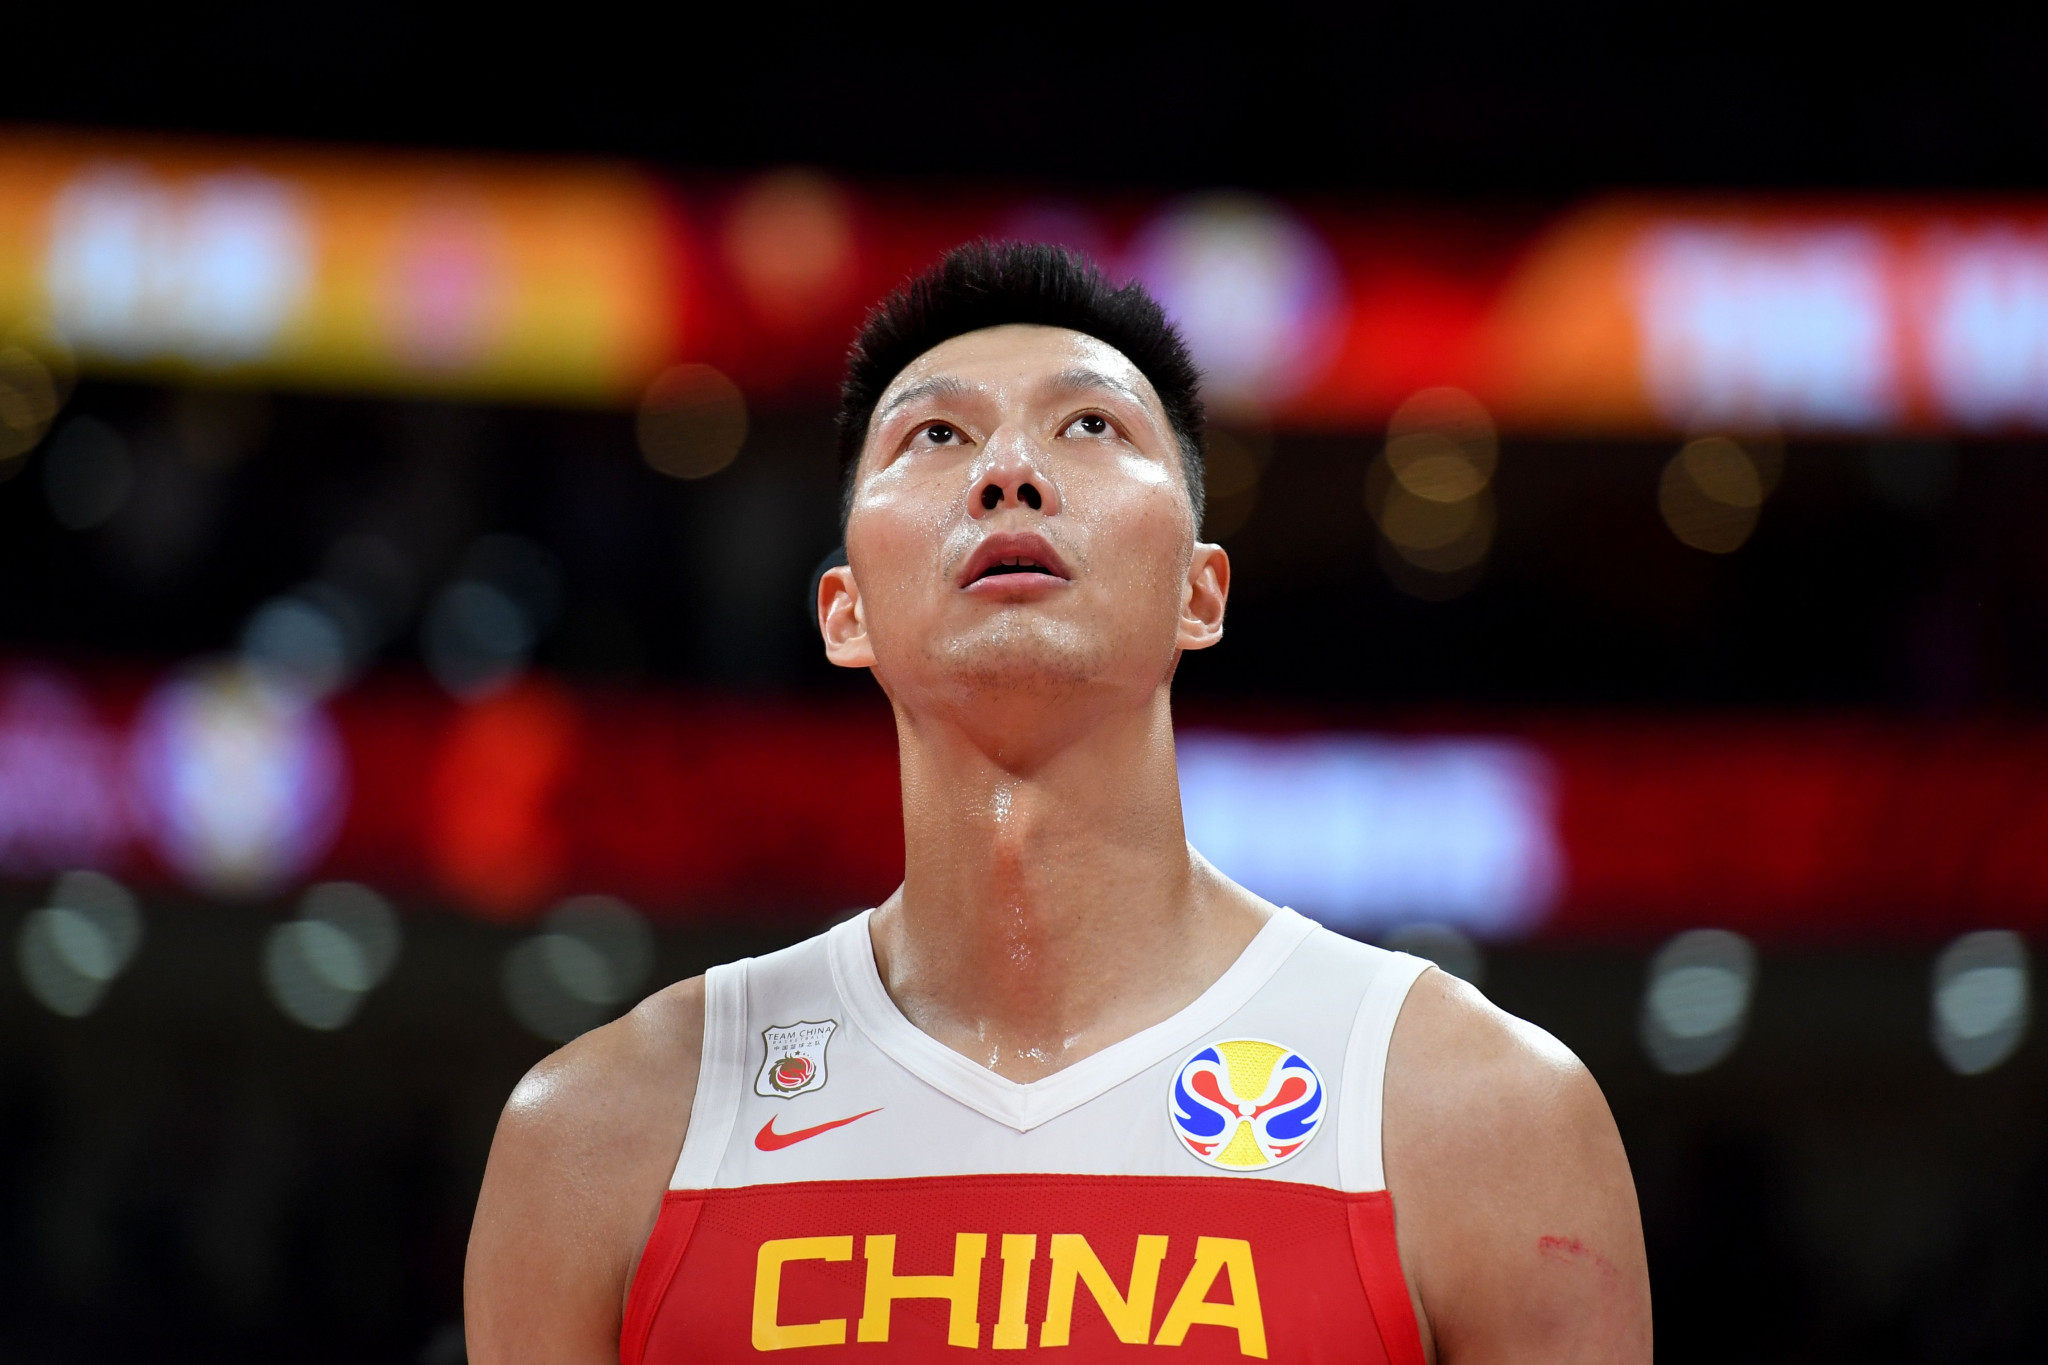 China spiral out of home FIBA World Cup after Venezuela defeat